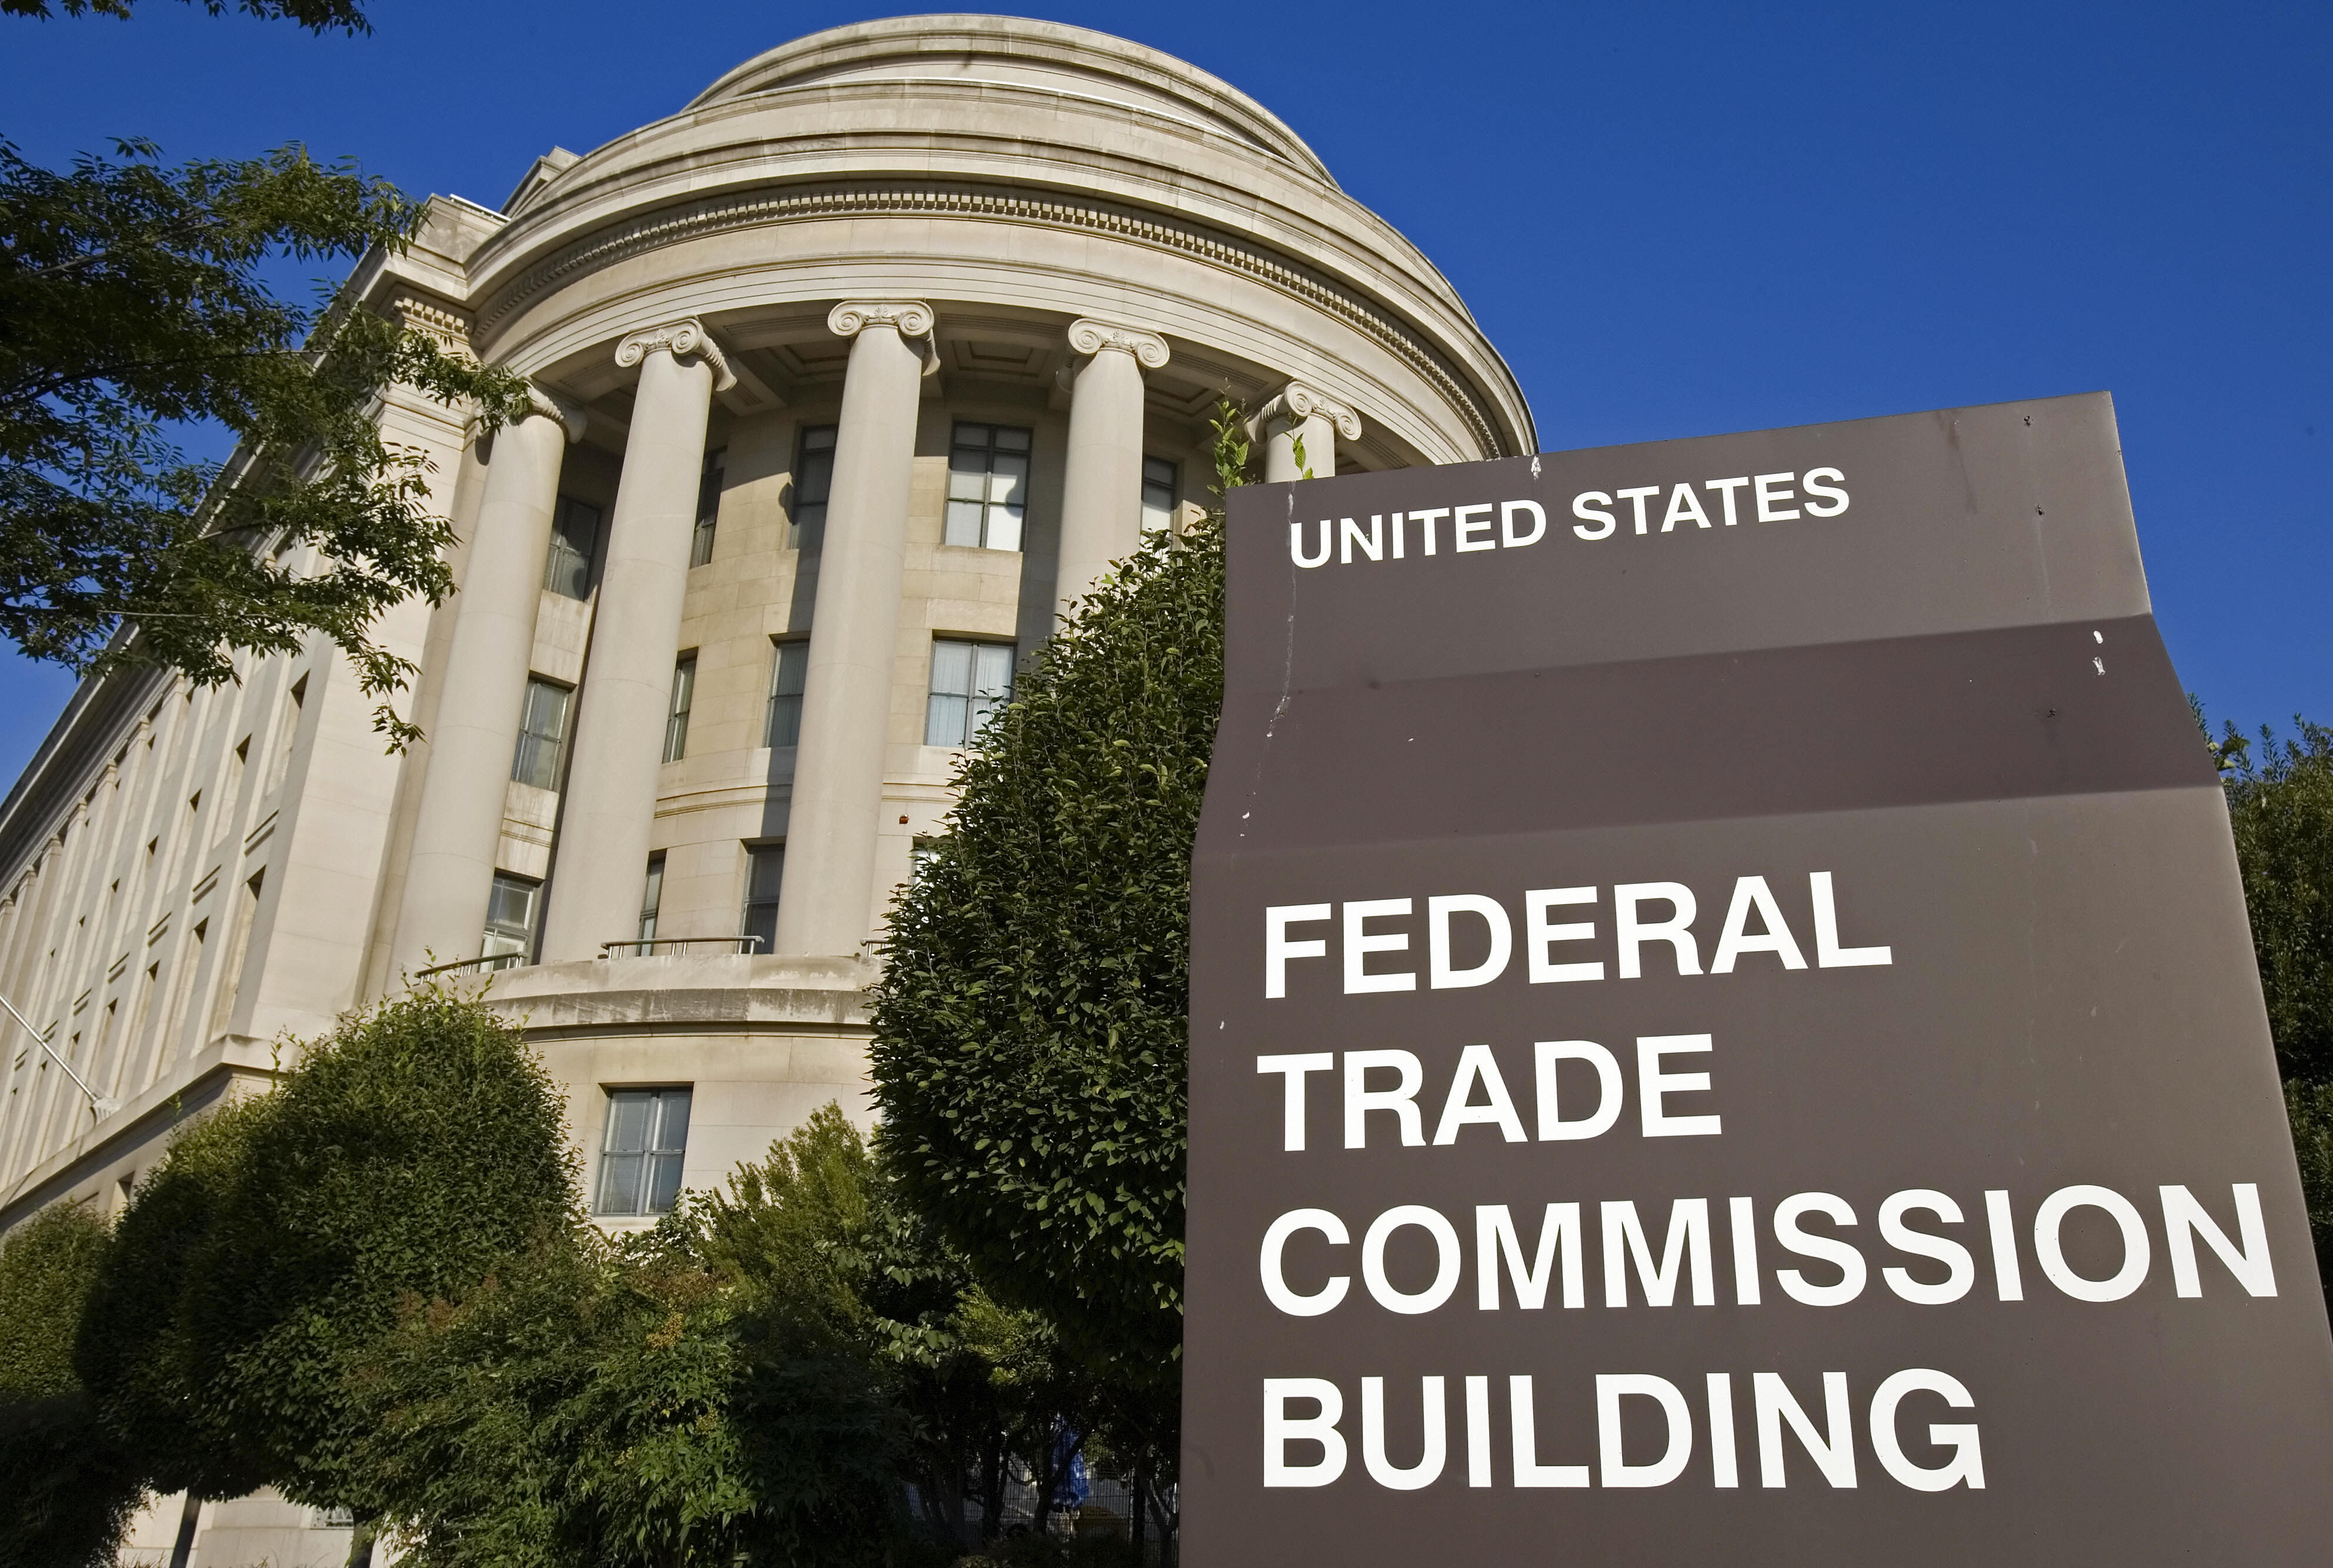 FTC rules that health apps must notify consumers affected by data breaches